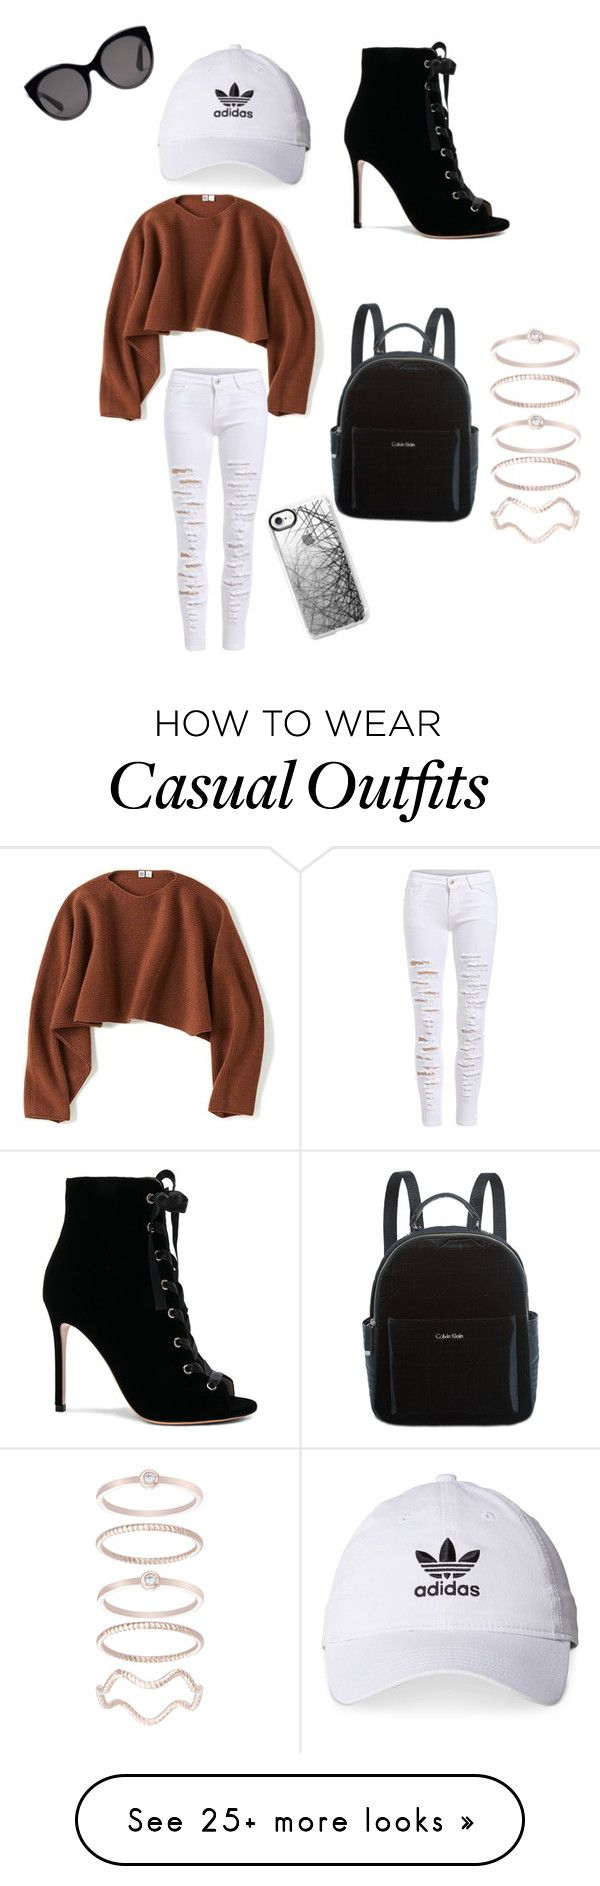 """Cute casual"" by katherinebazarte on Polyvore featuring Uniqlo, Gianvito Rossi, Calvin Klein, Gucci, adidas, Casetify and Mia Sarine"